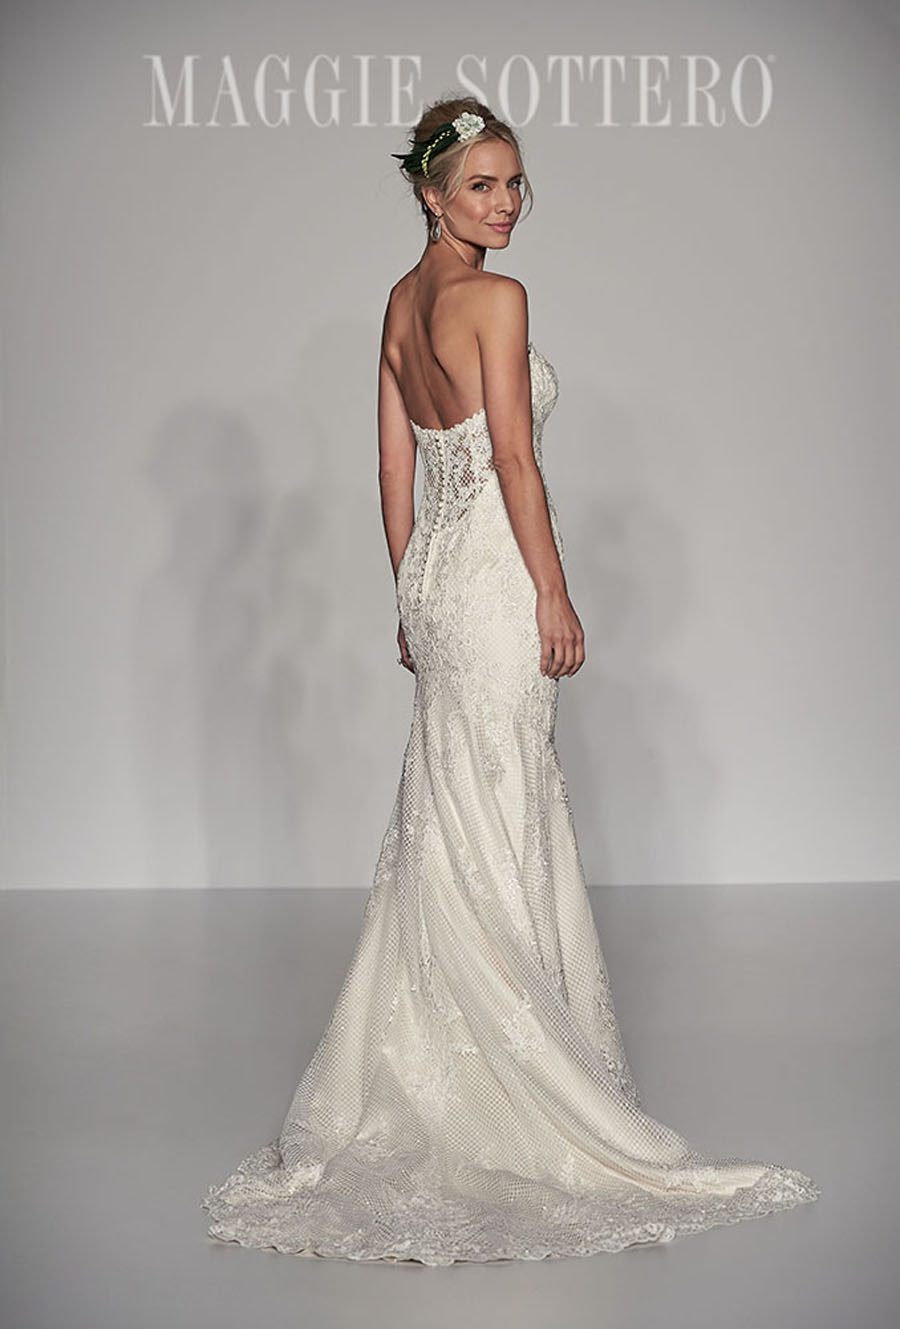 Maggie Sottero Spring 2017 Collection - MCKENNA back